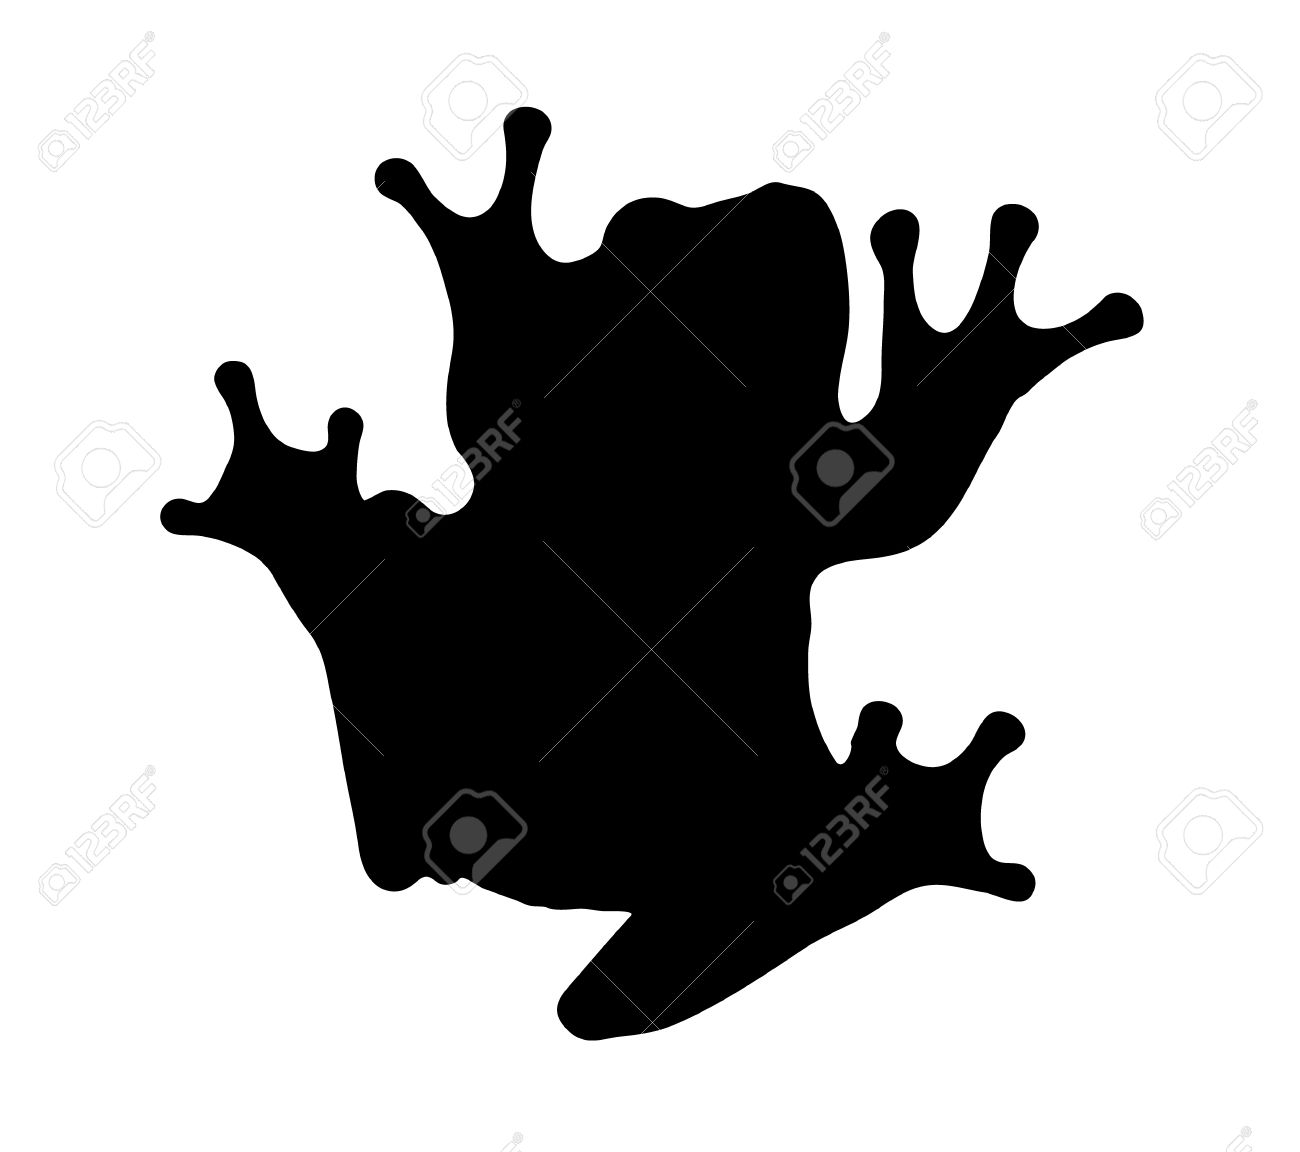 White-lipped Tree Frog clipart #12, Download drawings